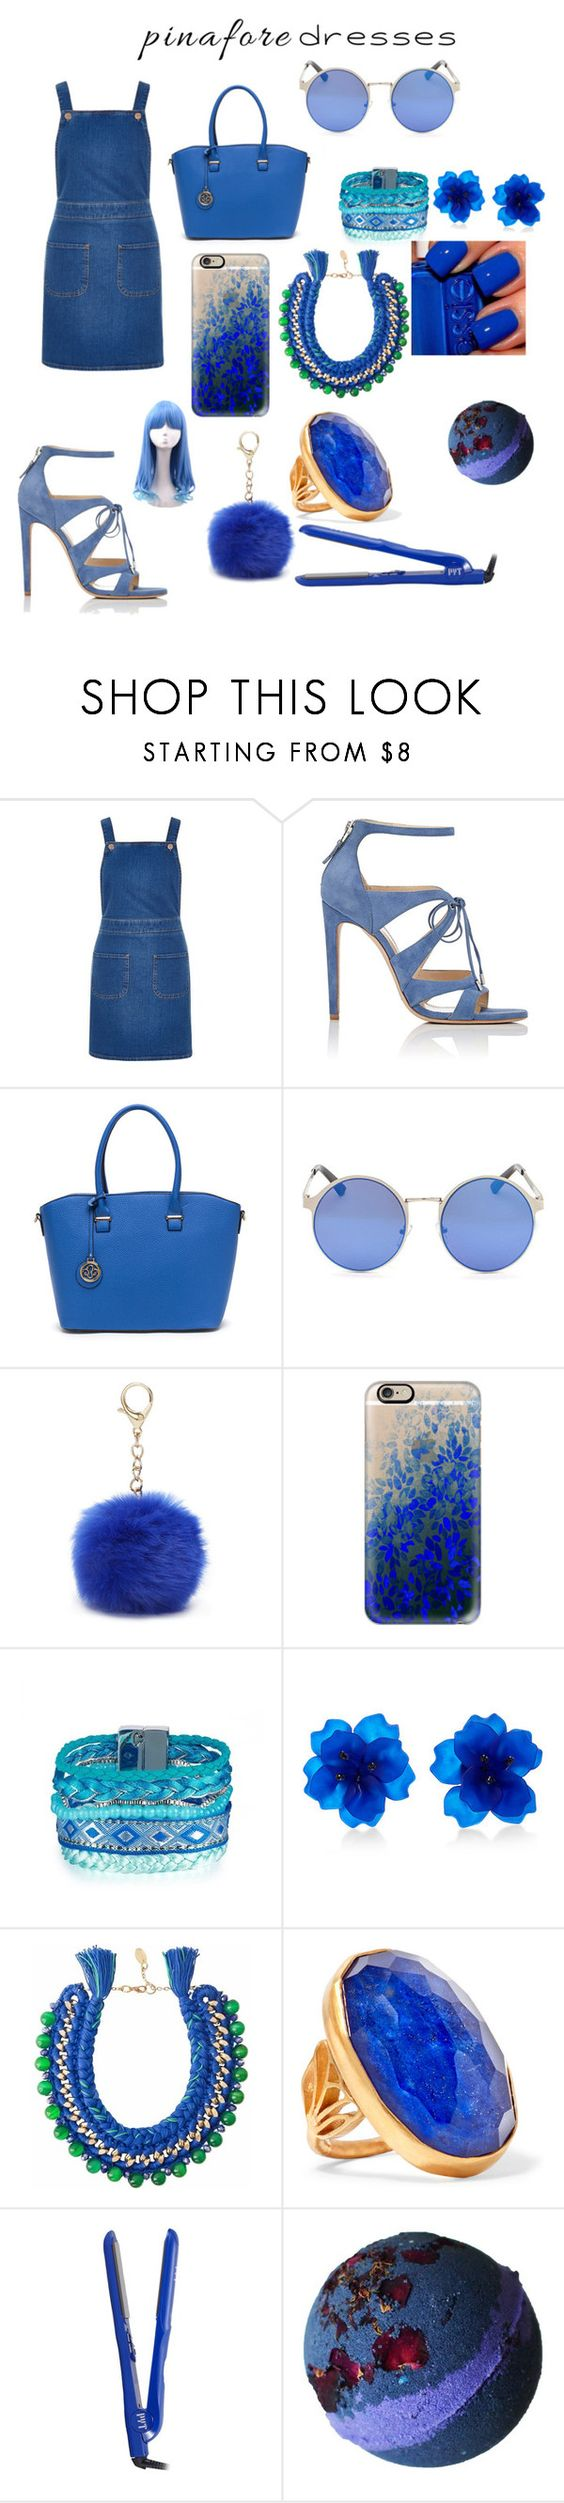 """""""Untitled #320"""" by jermiahwalters ❤ liked on Polyvore featuring River Island, Chloe Gosselin, Nine West, Casetify, Matthew&Melka, Ricardo Rodriguez, Katerina Makriyianni, PYT, pinafores and 60secondstyle"""